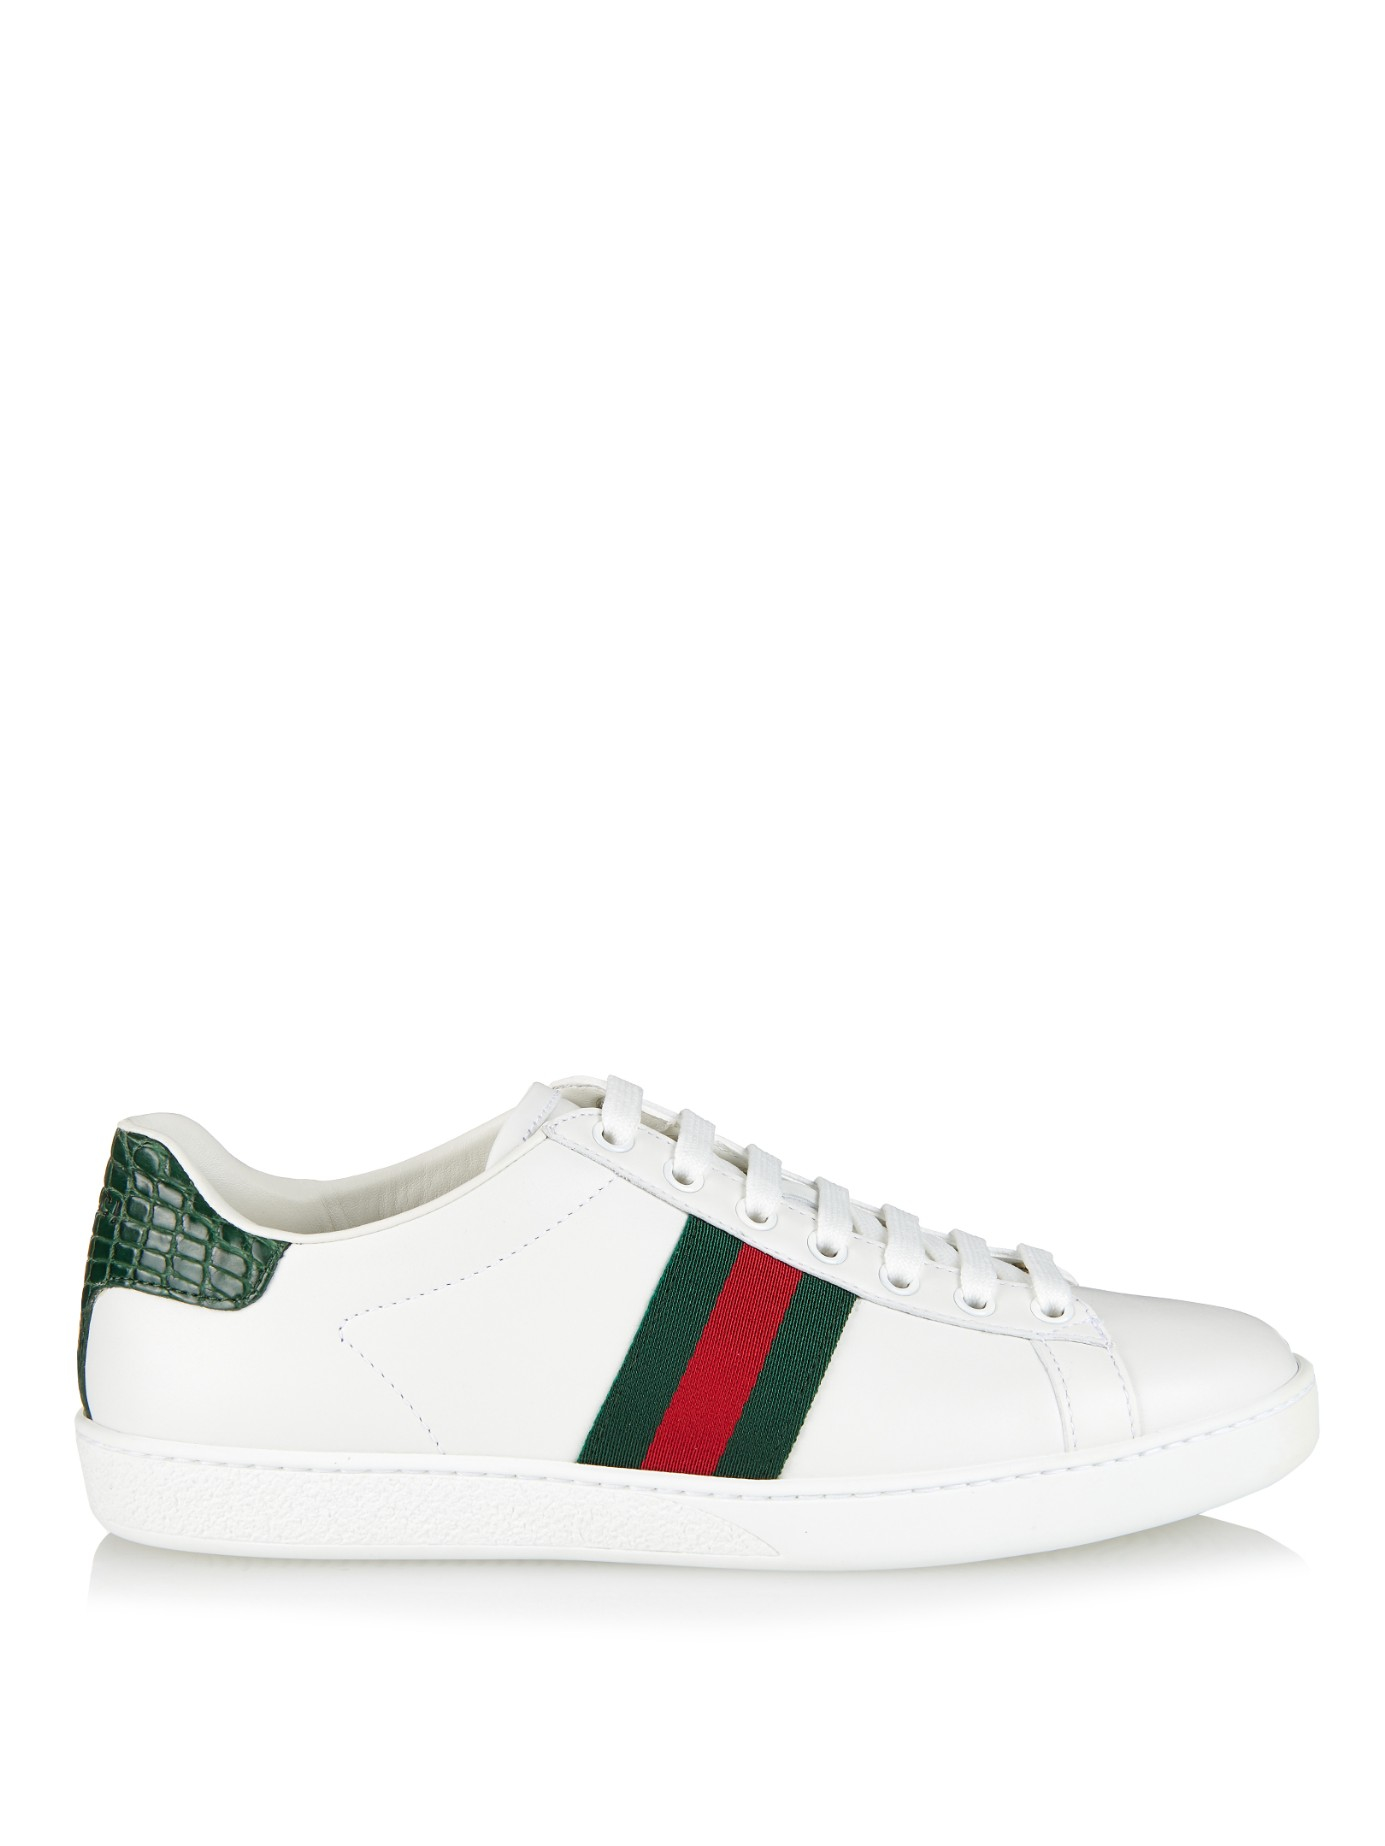 GucciLeather Trainers 93IpoADiw